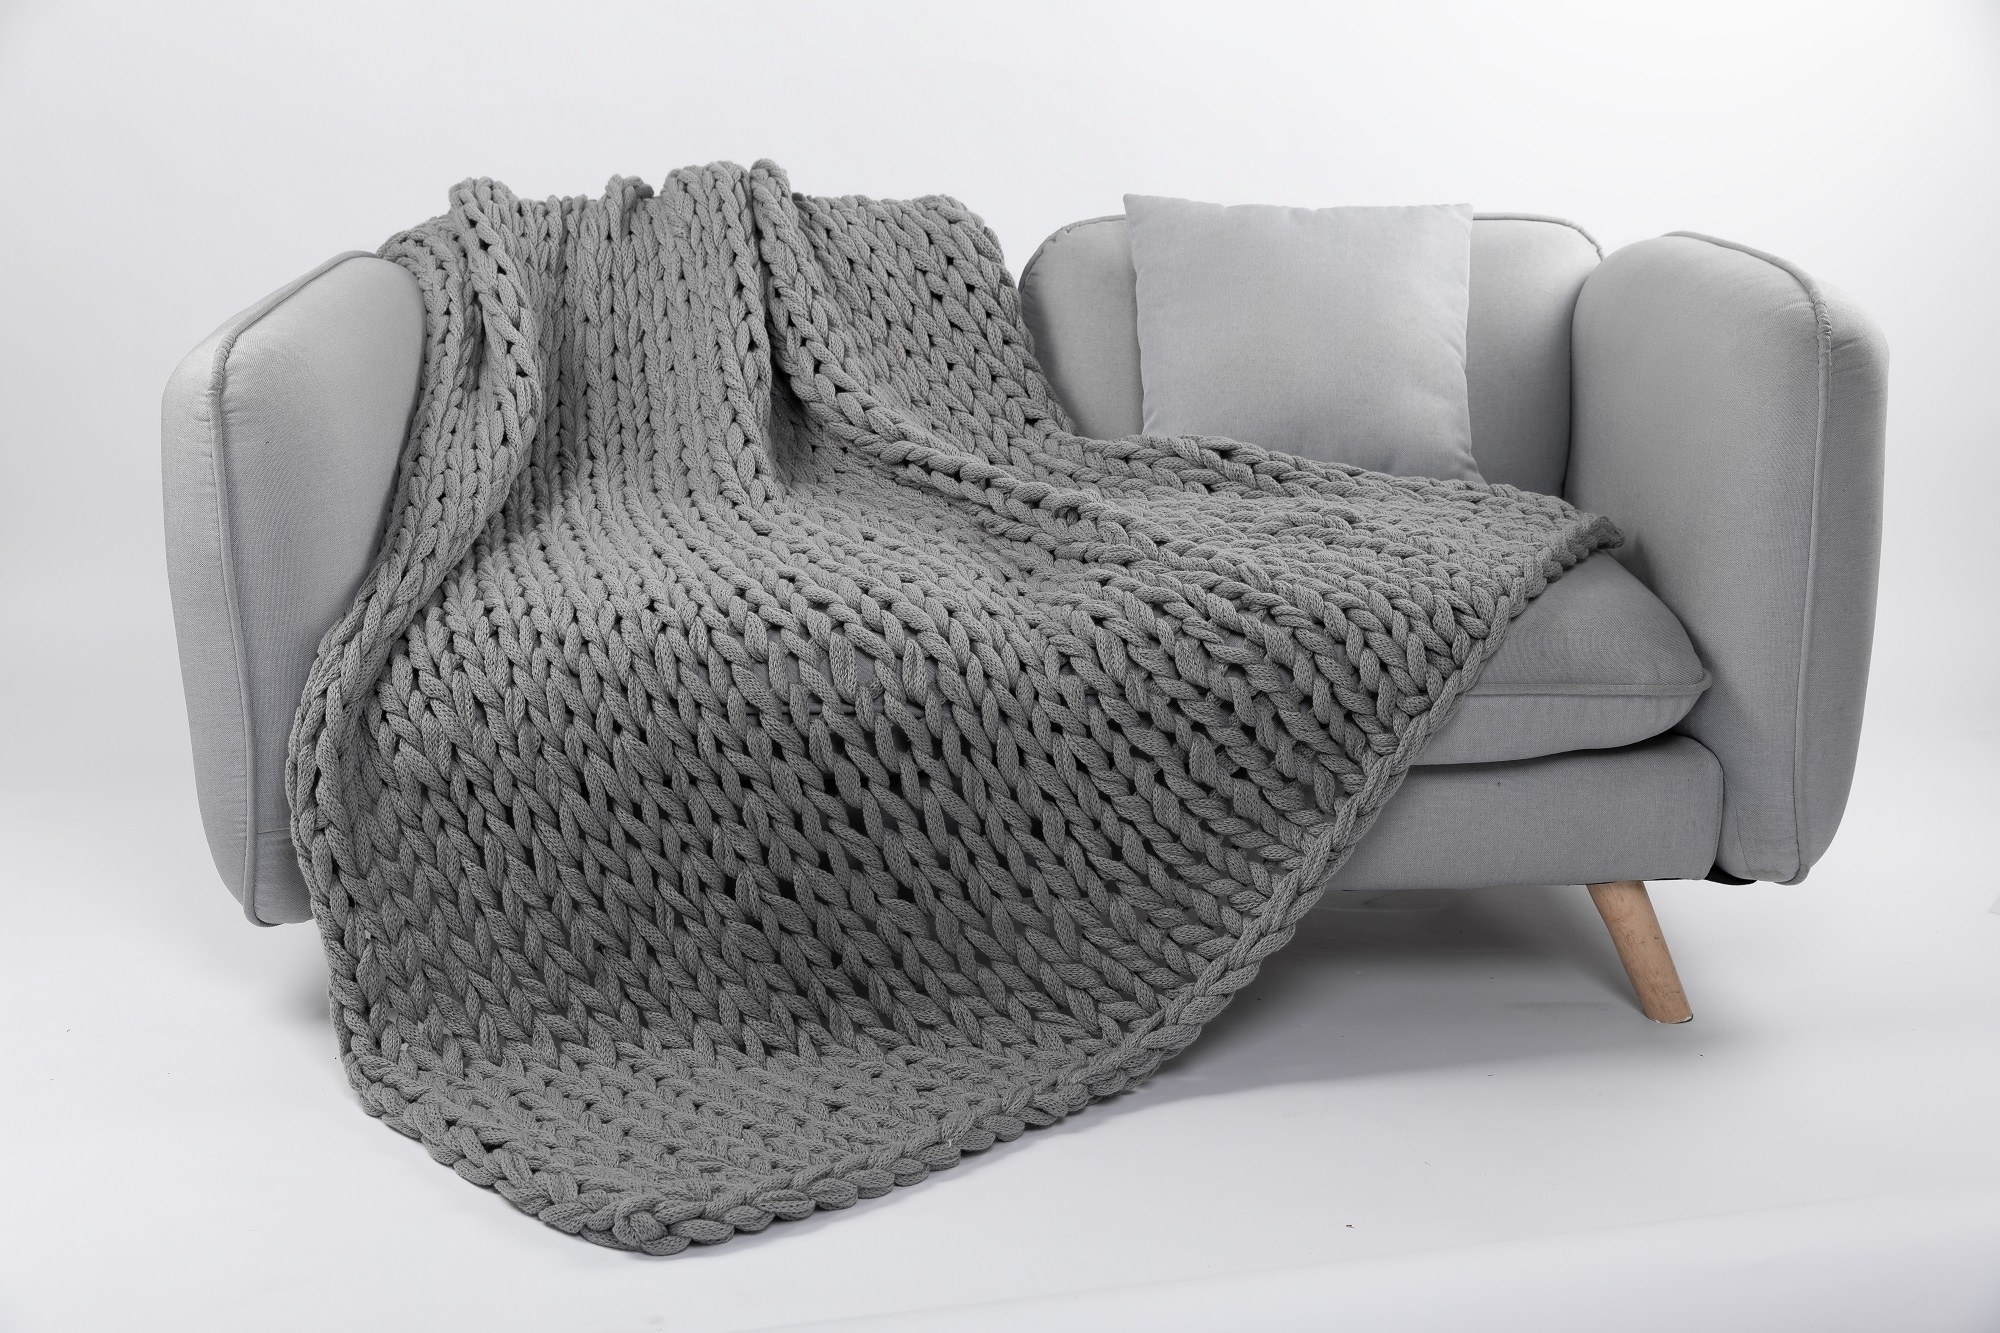 The grey blanket on a grey couch